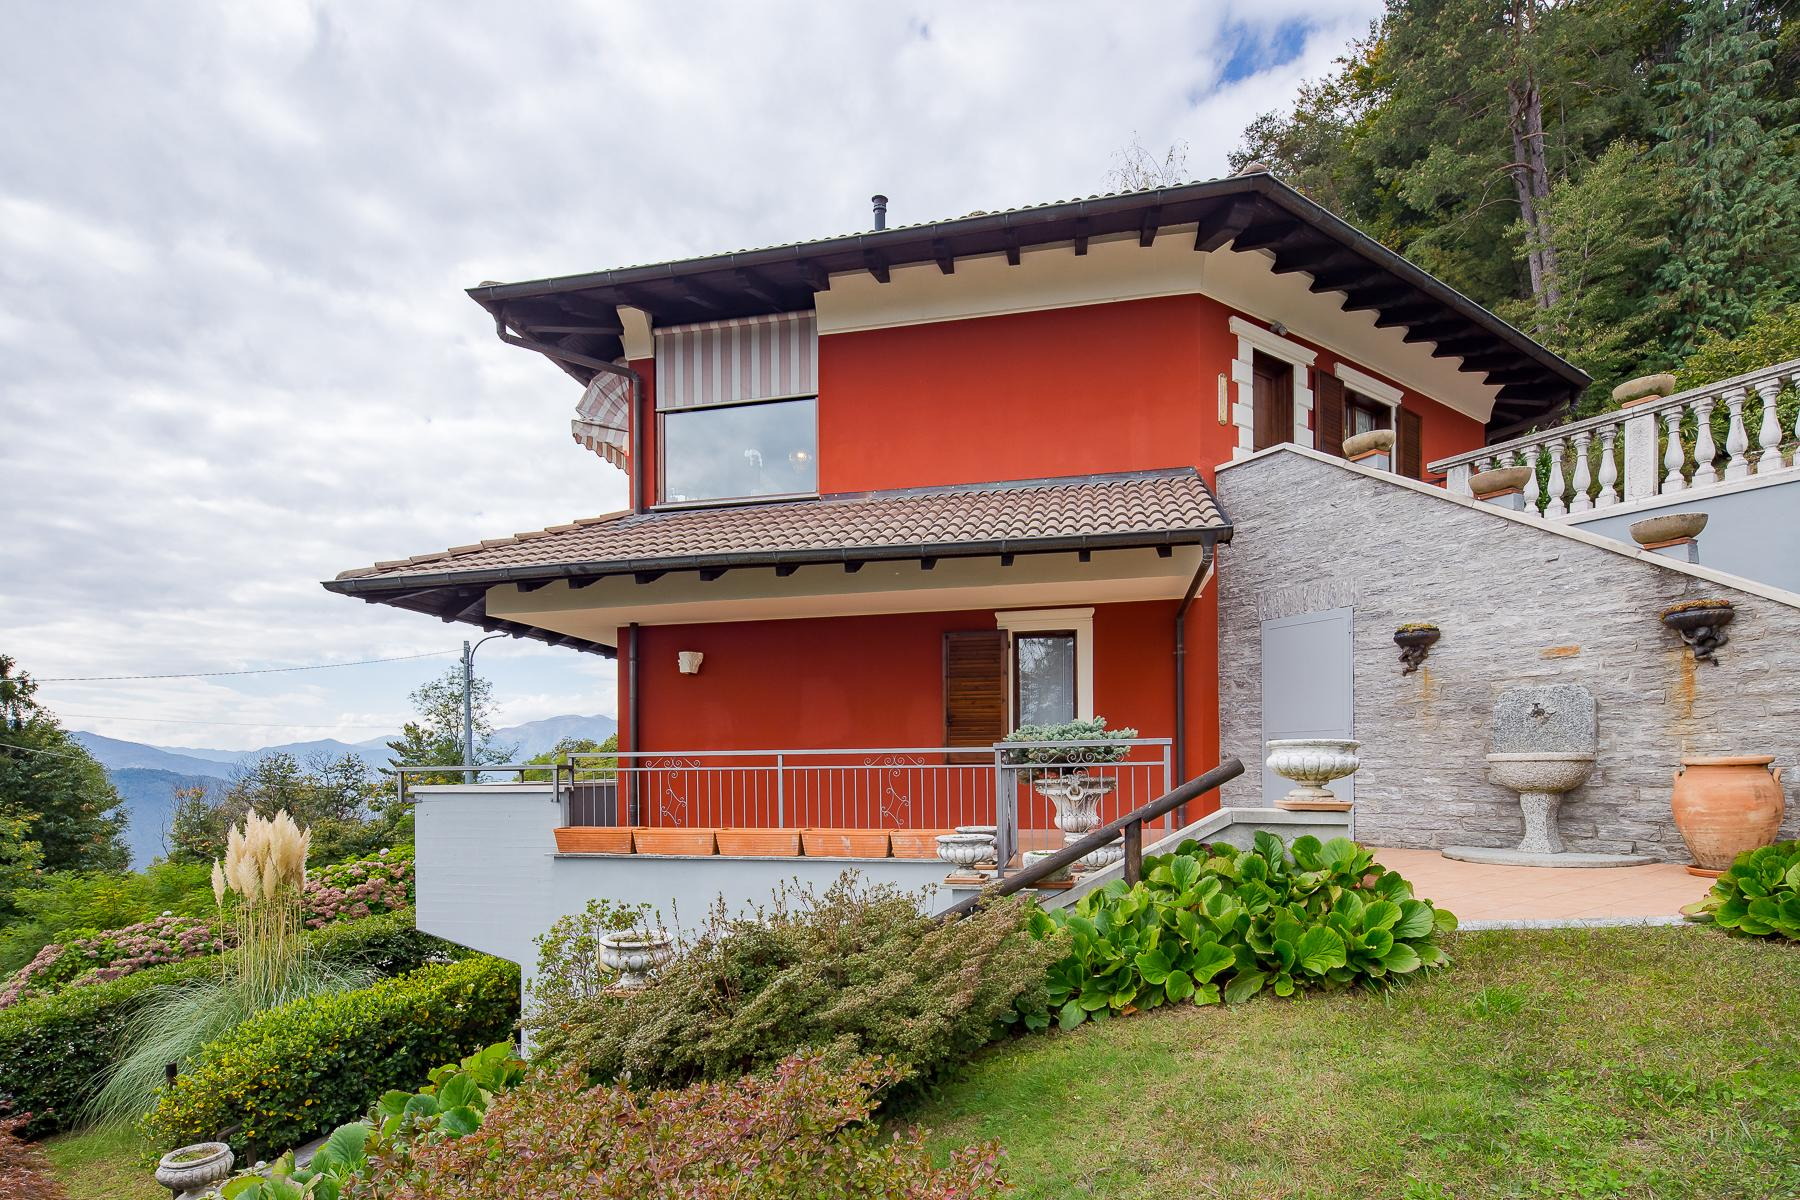 Detached Villa in the hilly area of Verbania with wonderful lake view - 10